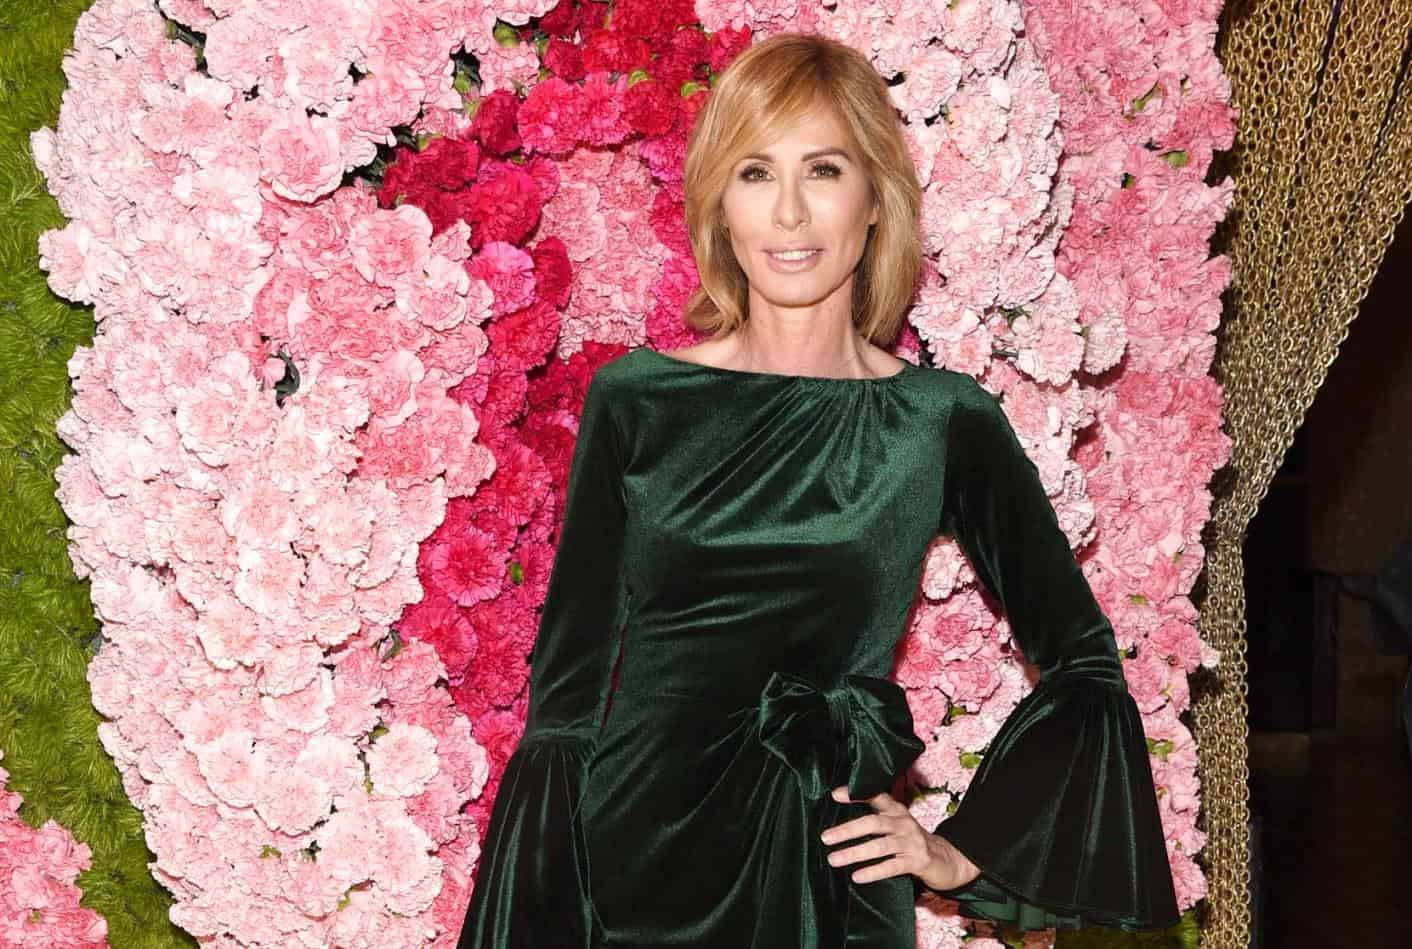 Carole Radziwill Dishes On Behind the Scenes Drama That Never Aired on RHONY Caused by Tinsley Mortimer Bringing Glam Team to Cast Trip, Plus How Glam Changed Over the Years